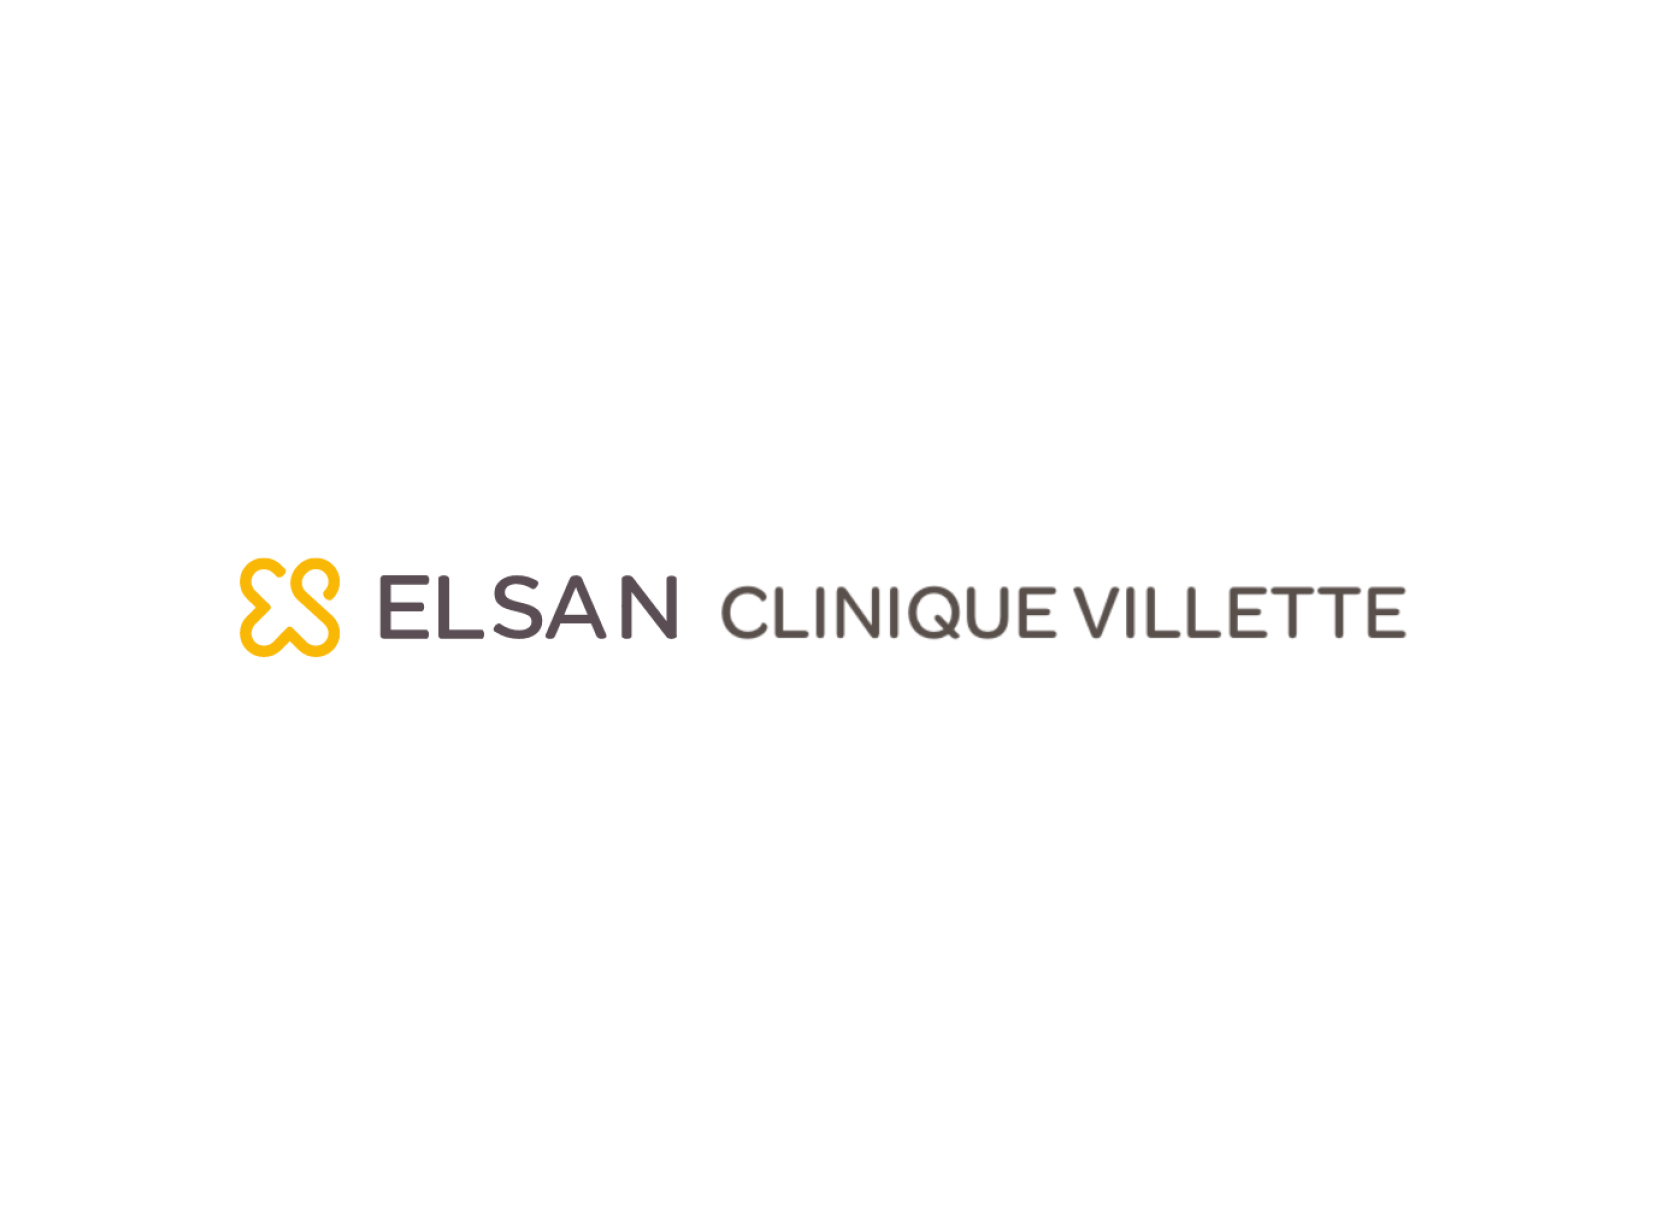 Logo Clinique Villette - ELSAN